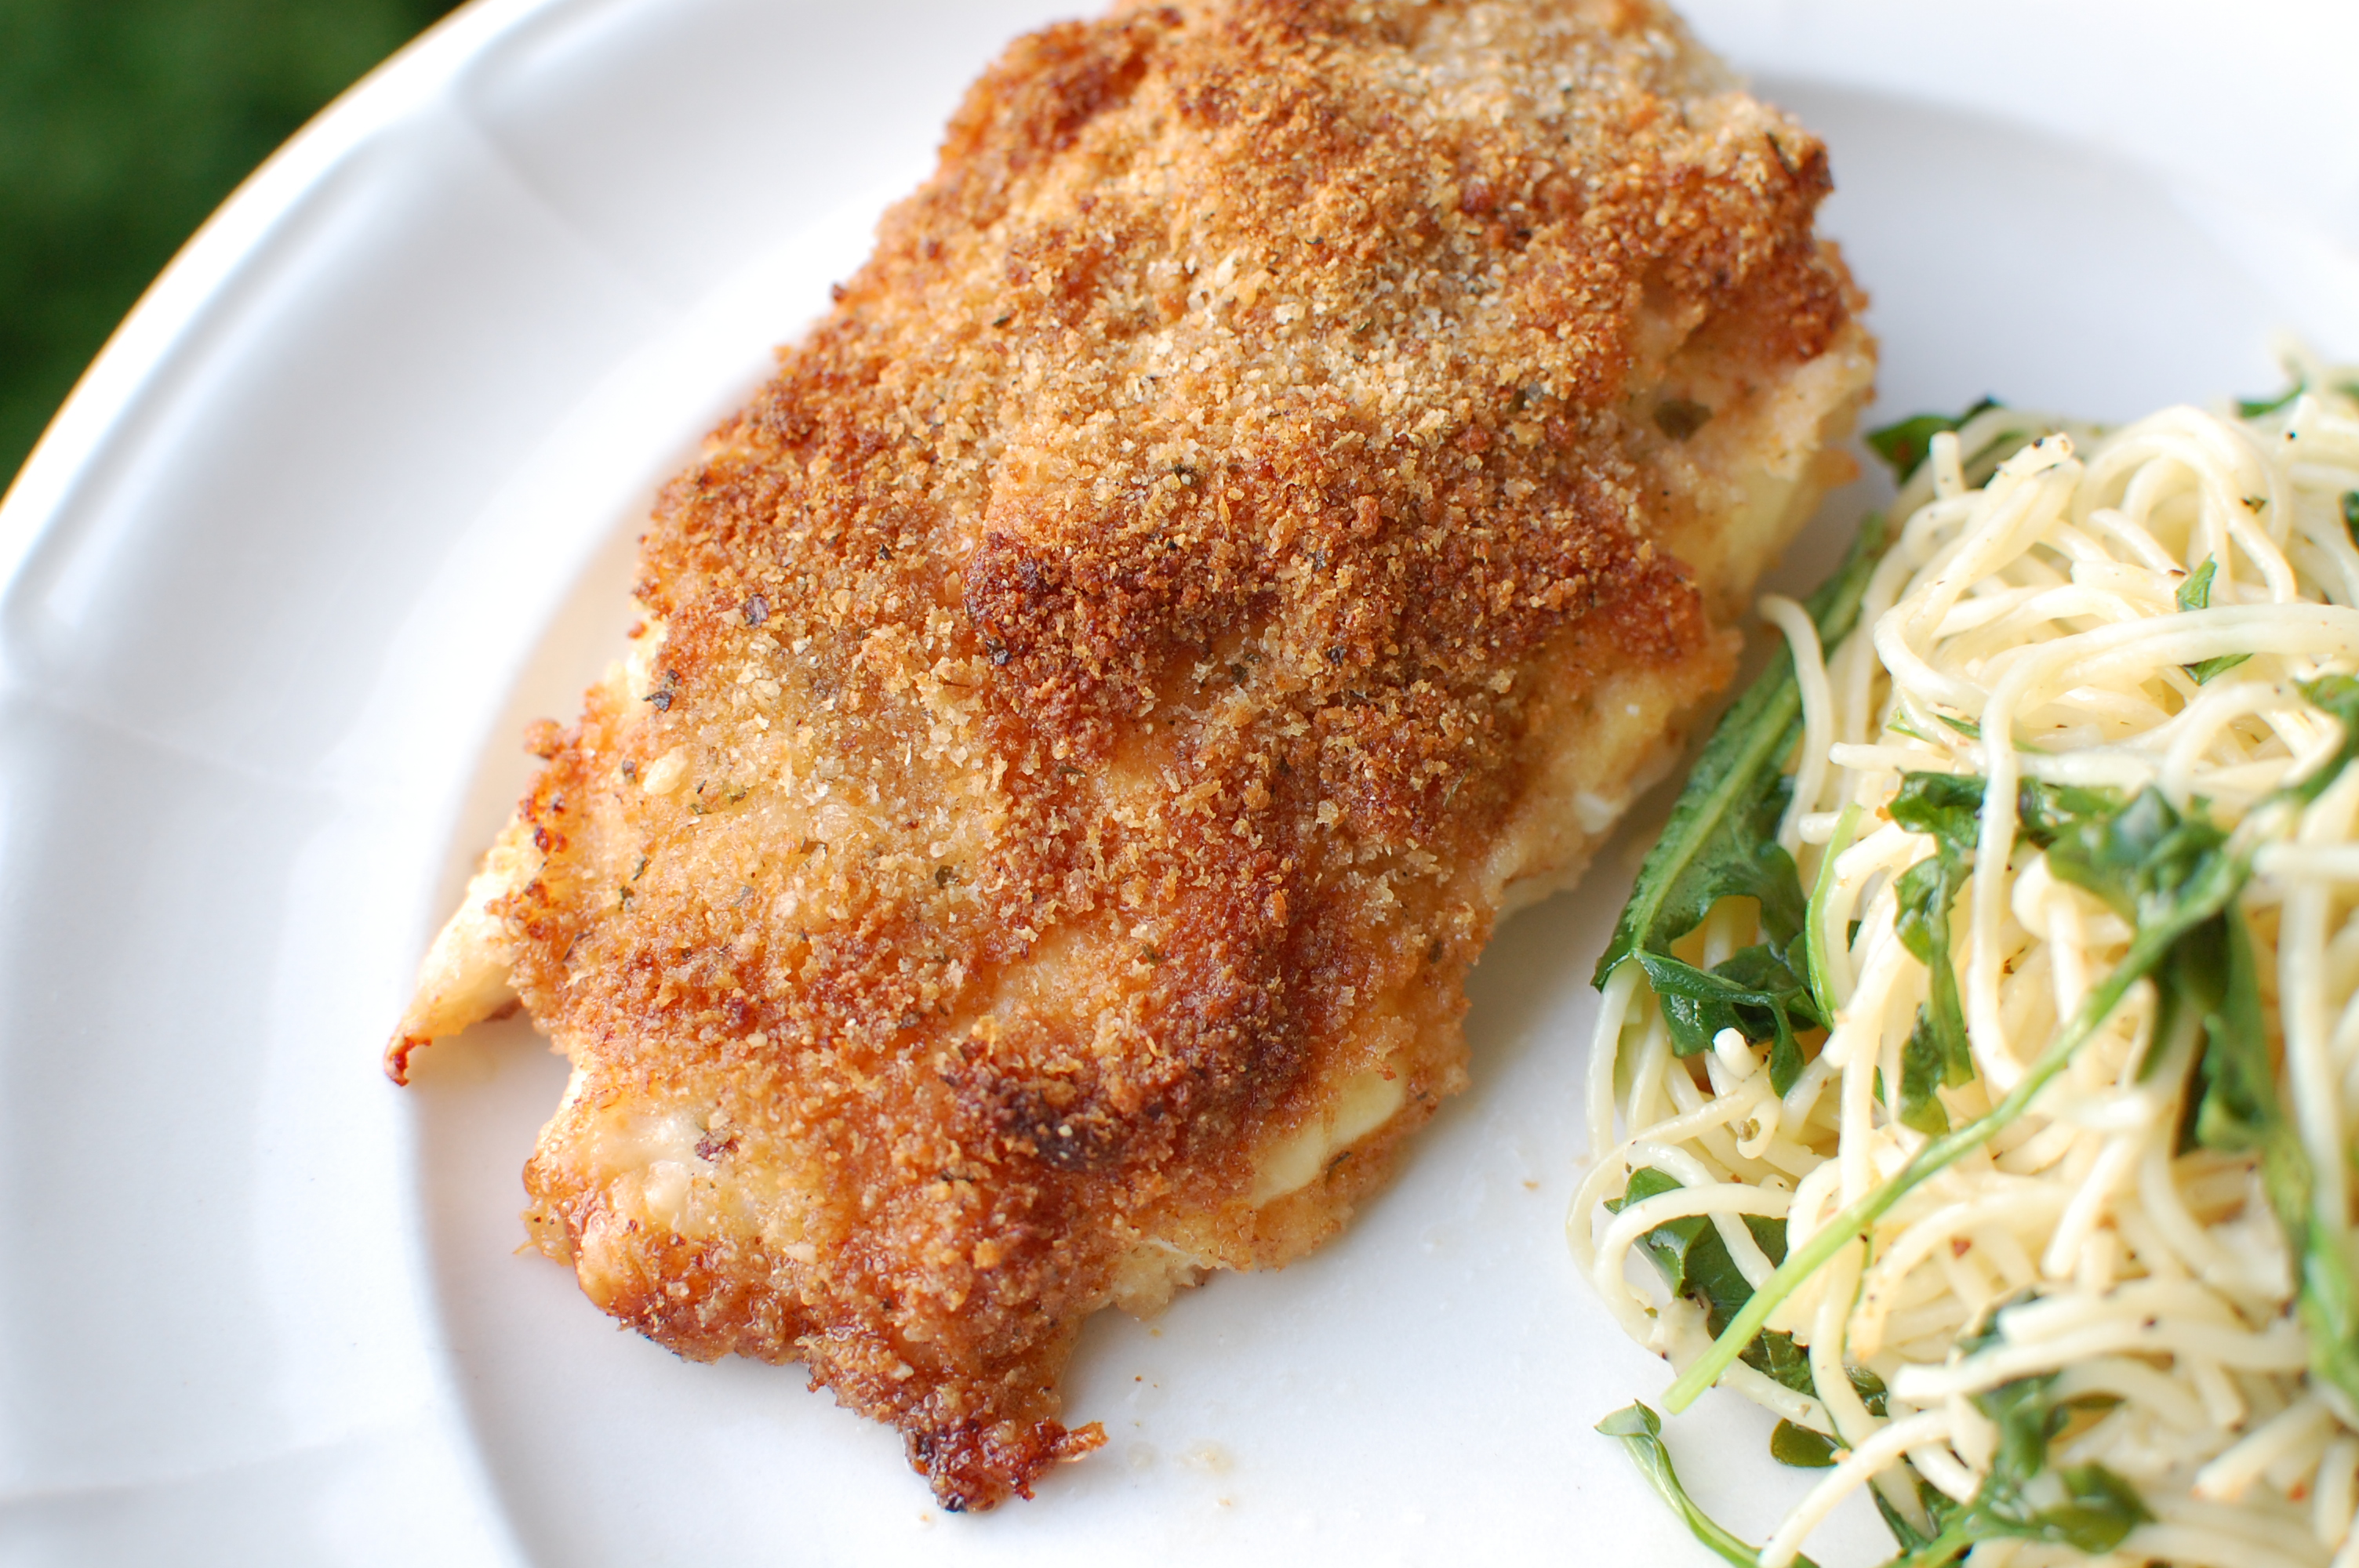 Parmesan-Crusted Chicken with Garlic-Herb Pasta | The Teacher Cooks